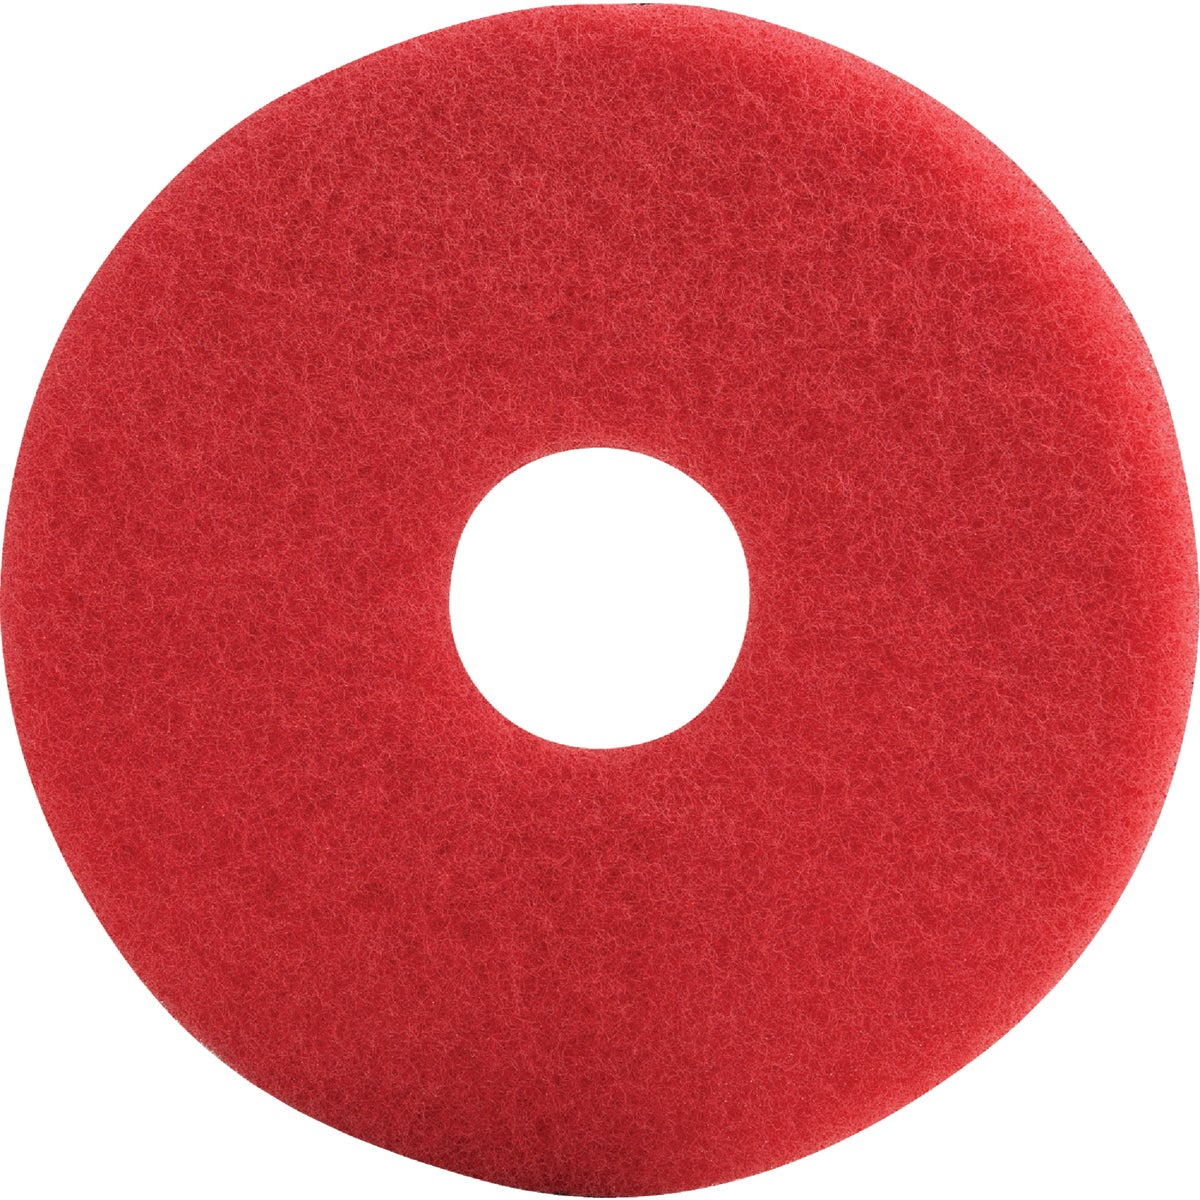 "13"" RED SCRUB PAD - TKL13R by Lundmark Wax Co"